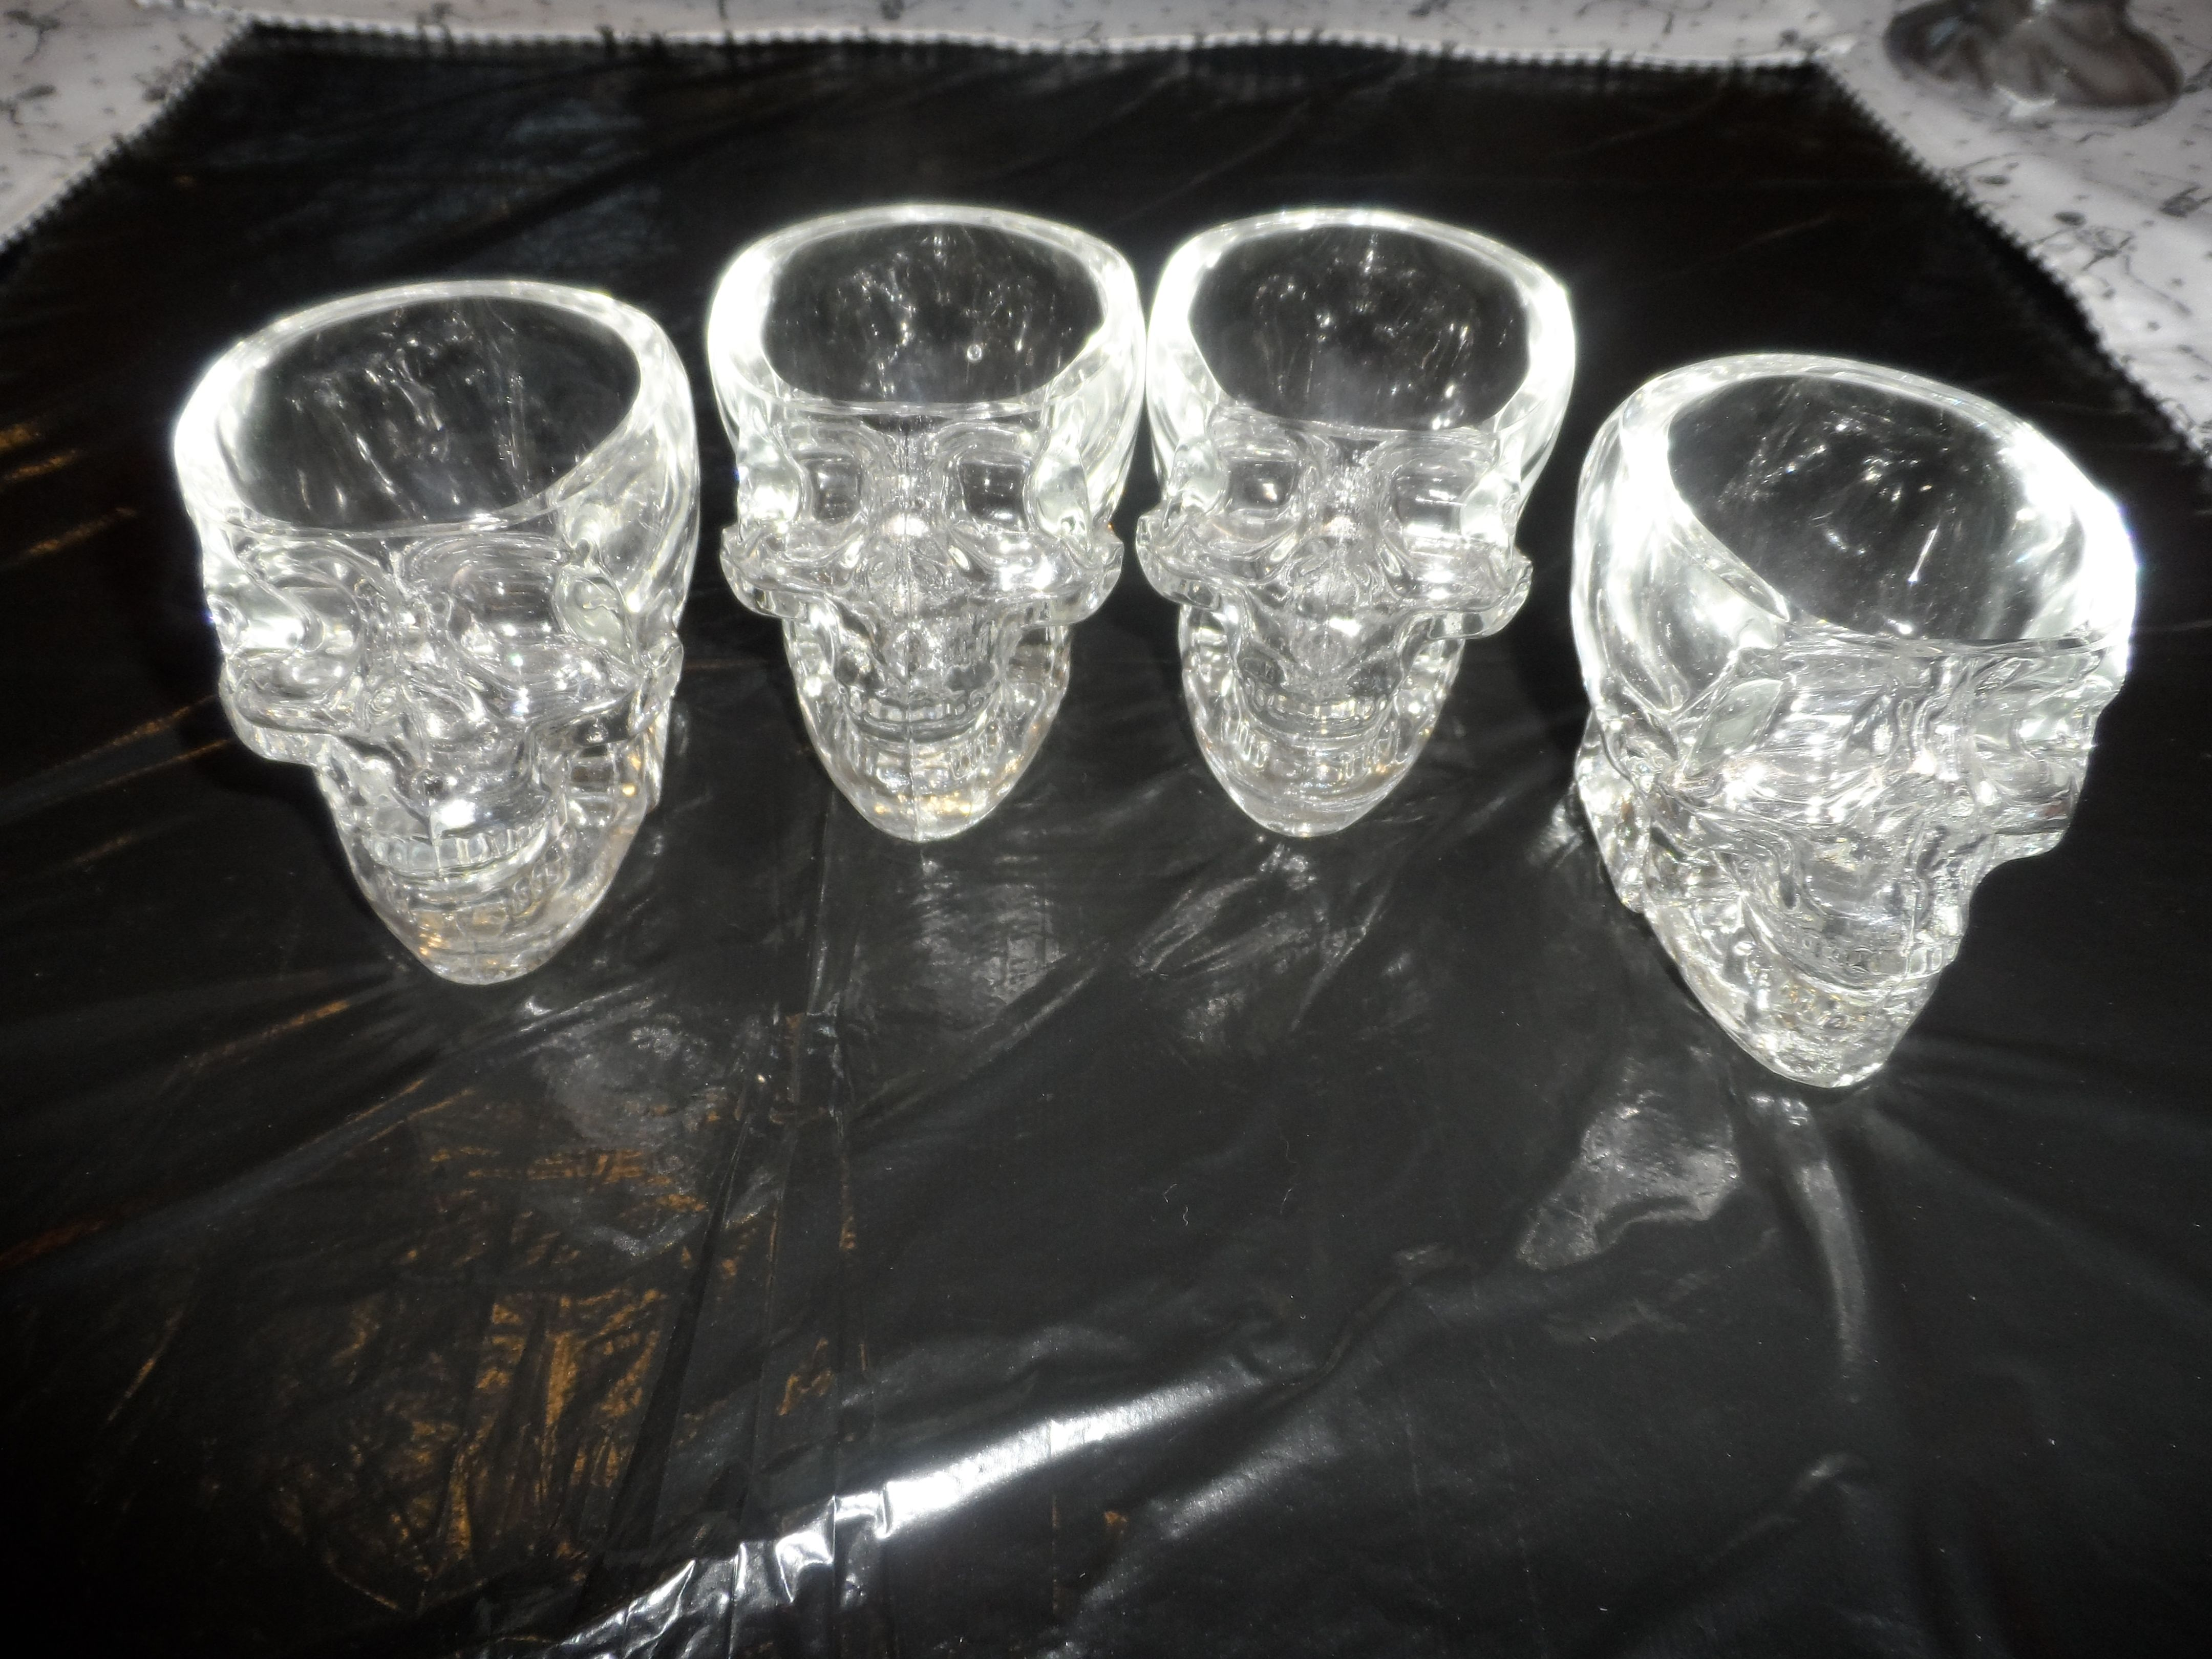 There are the 4 skulls I got for my birthday that came with the skulls full of vodka